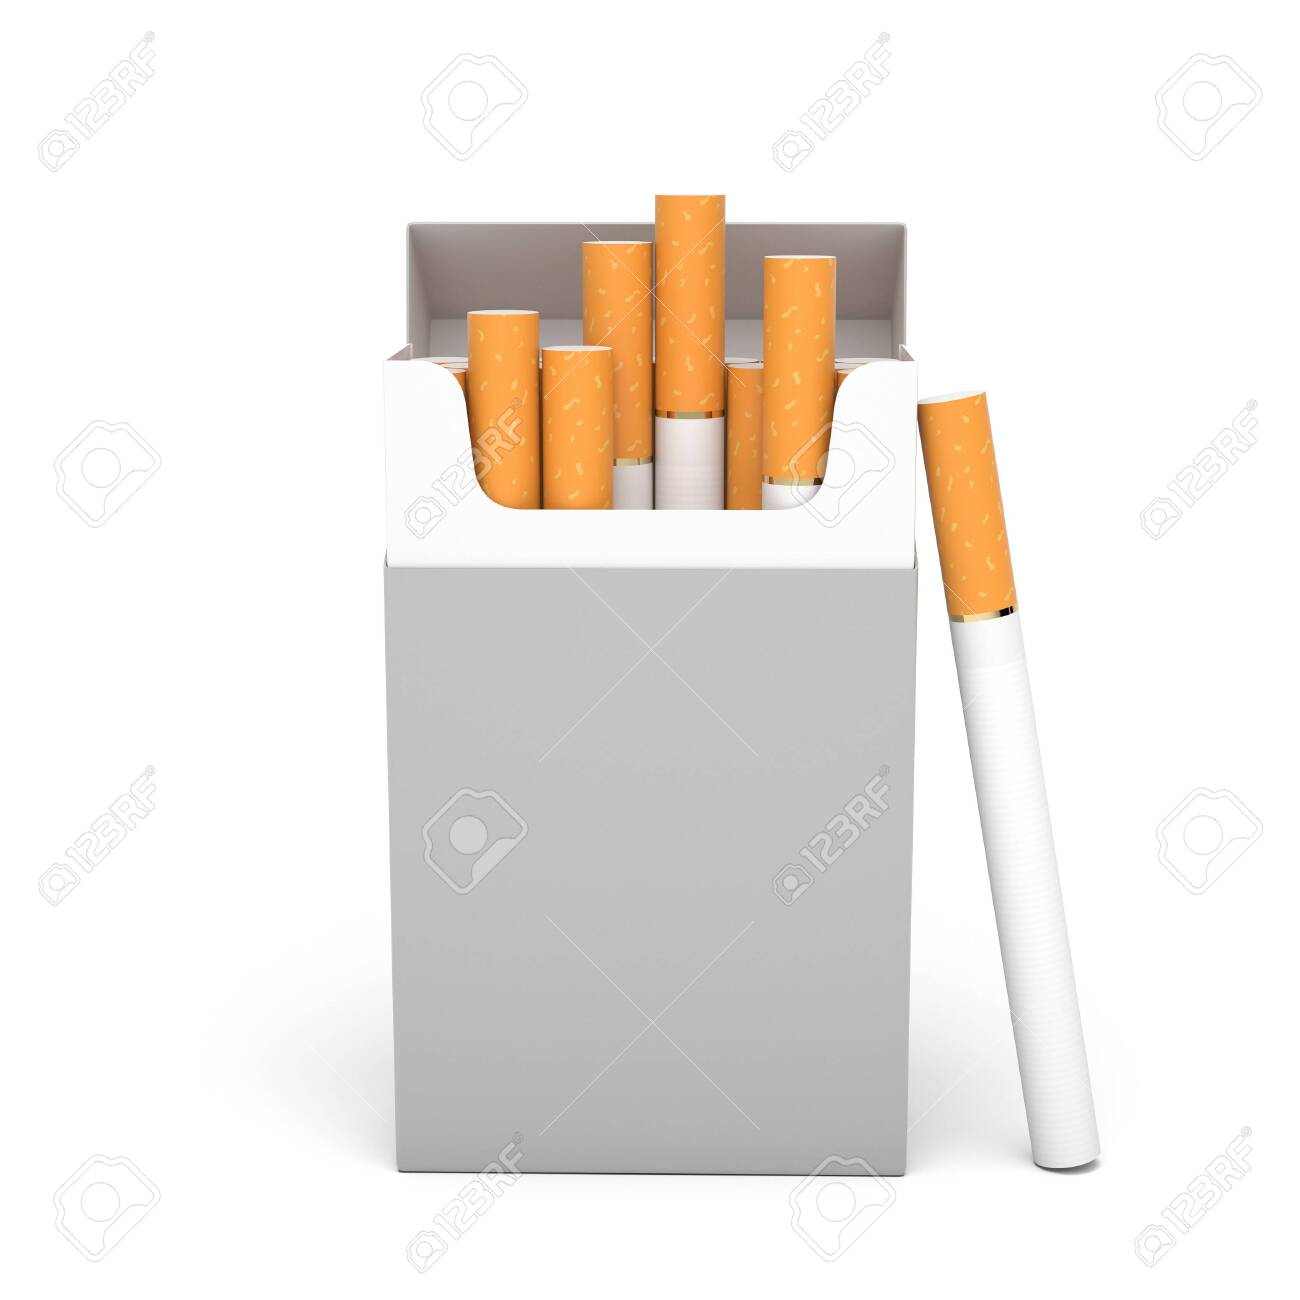 Blank pack of cigarettes. 3d rendering illustration isolated on white background - 150185976